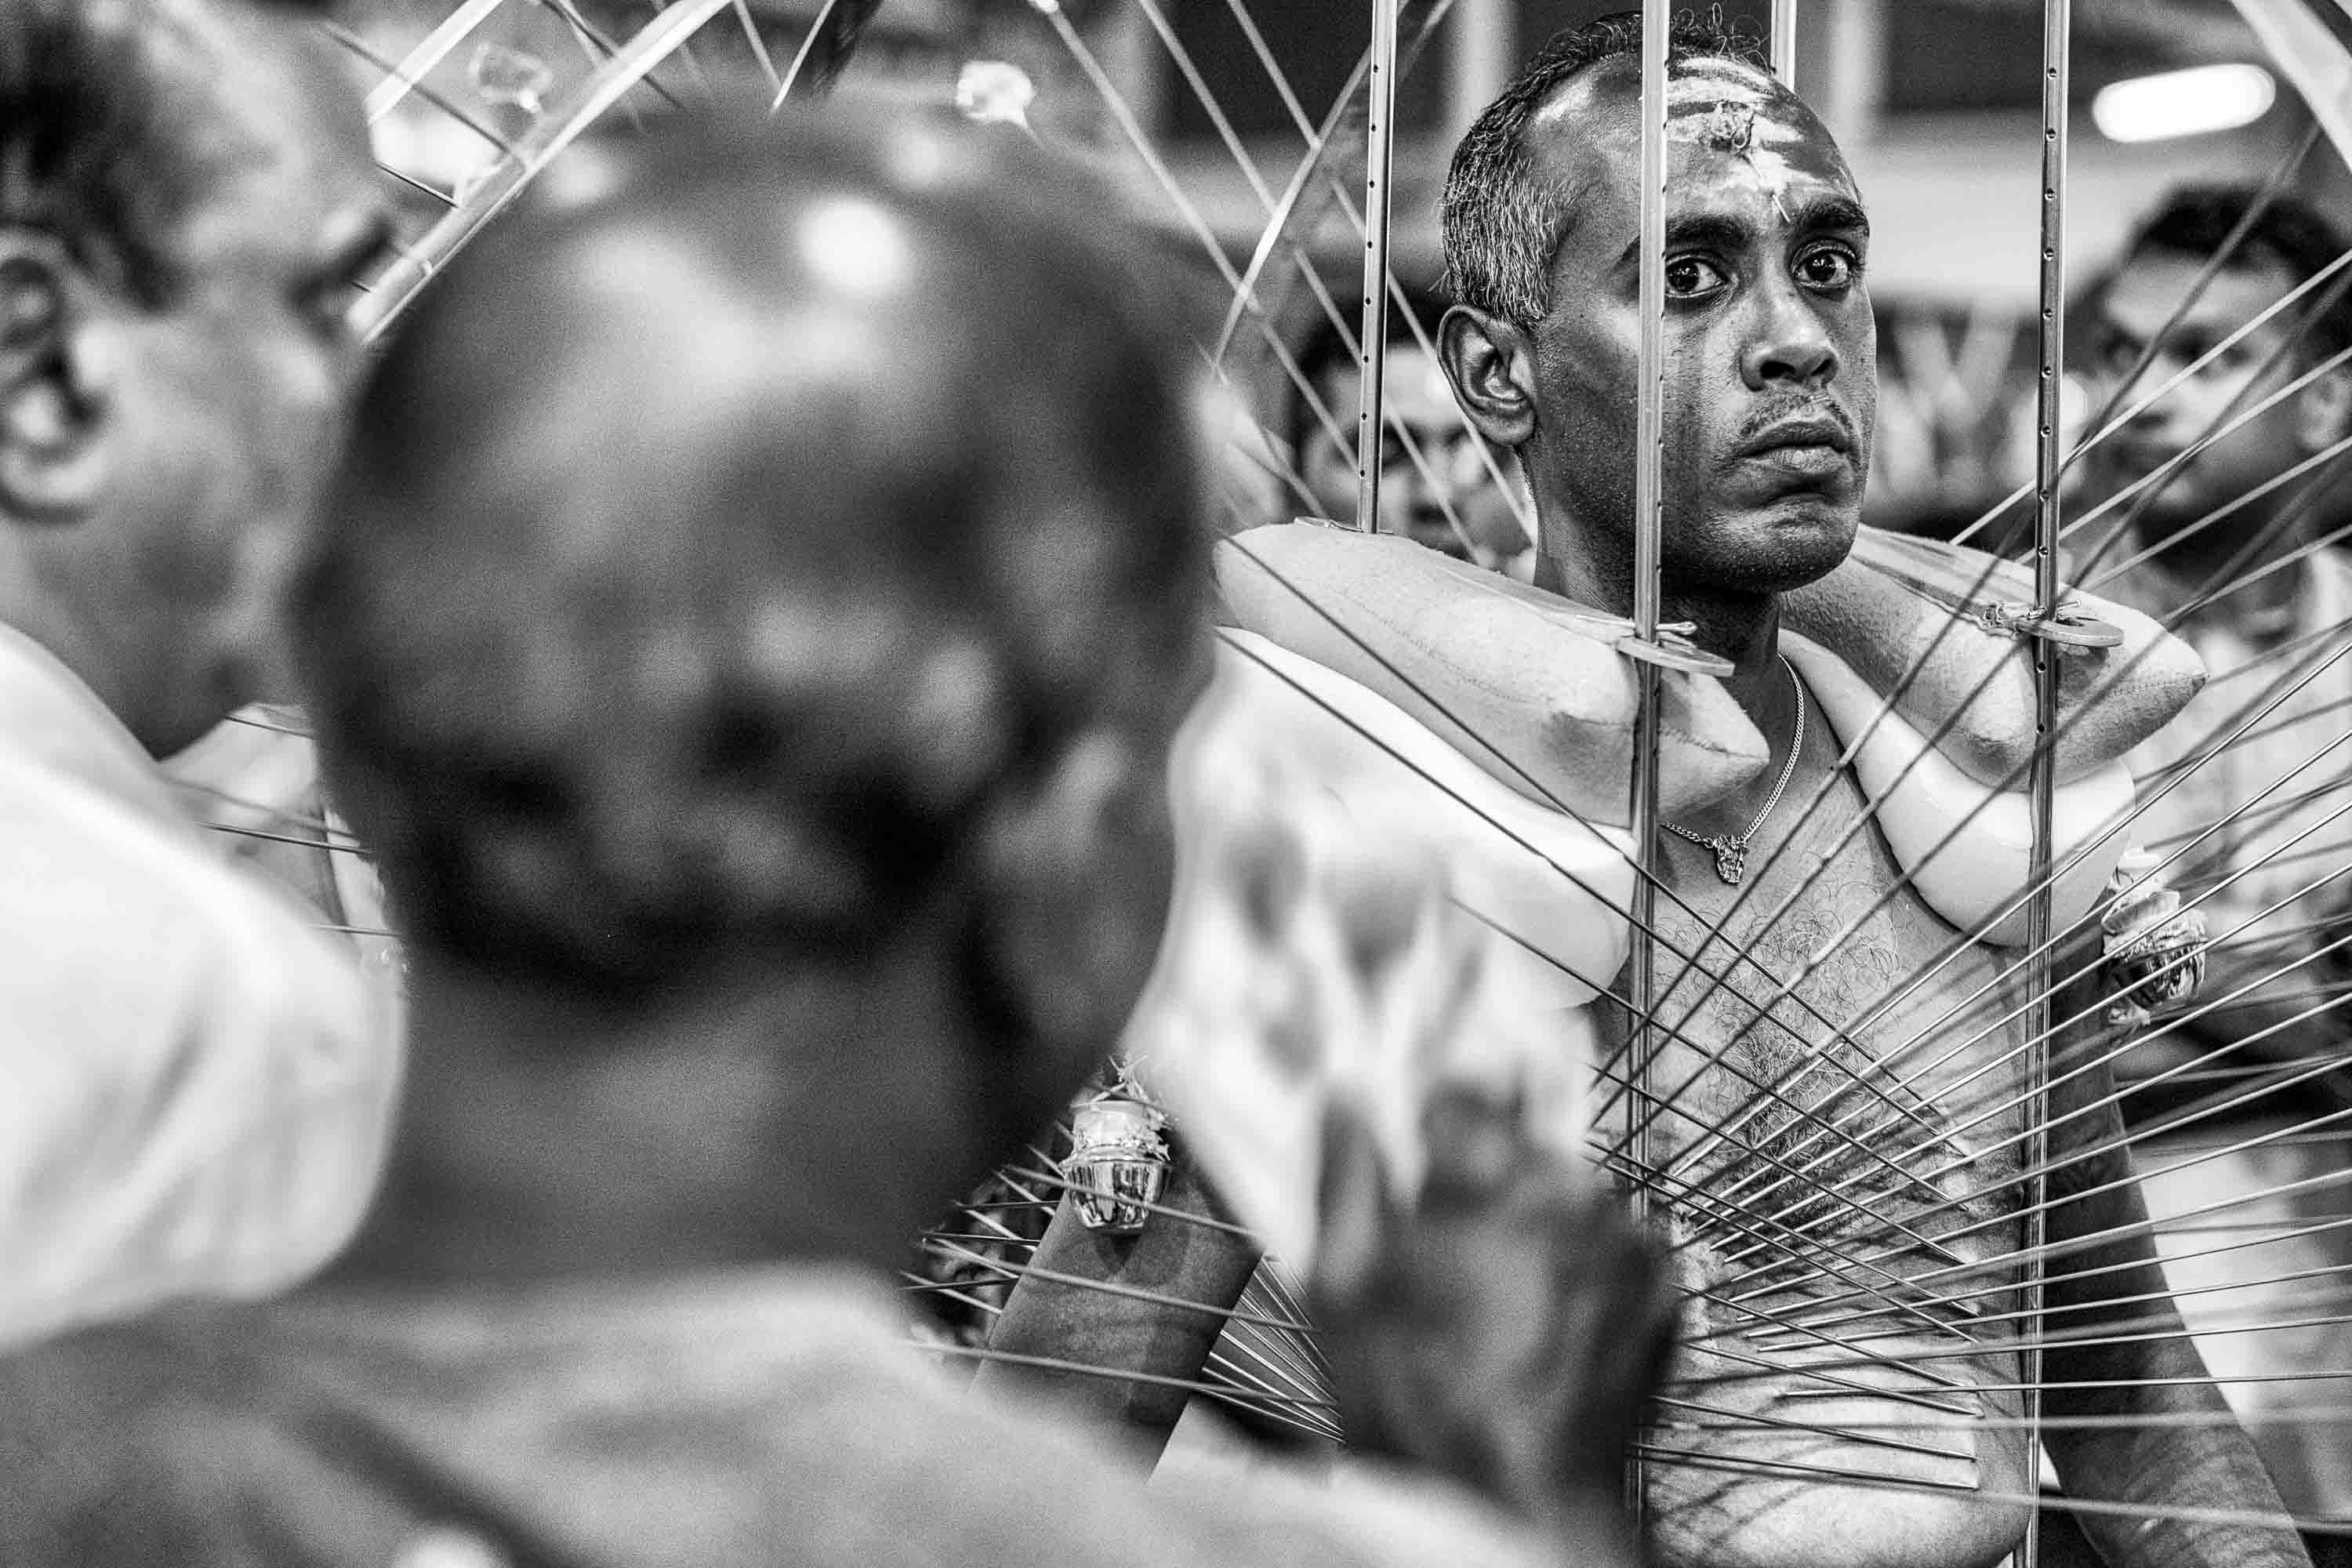 piercing man structure body Little India Thaipusam Festival hindu Singapore photography jose jeuland documentary event